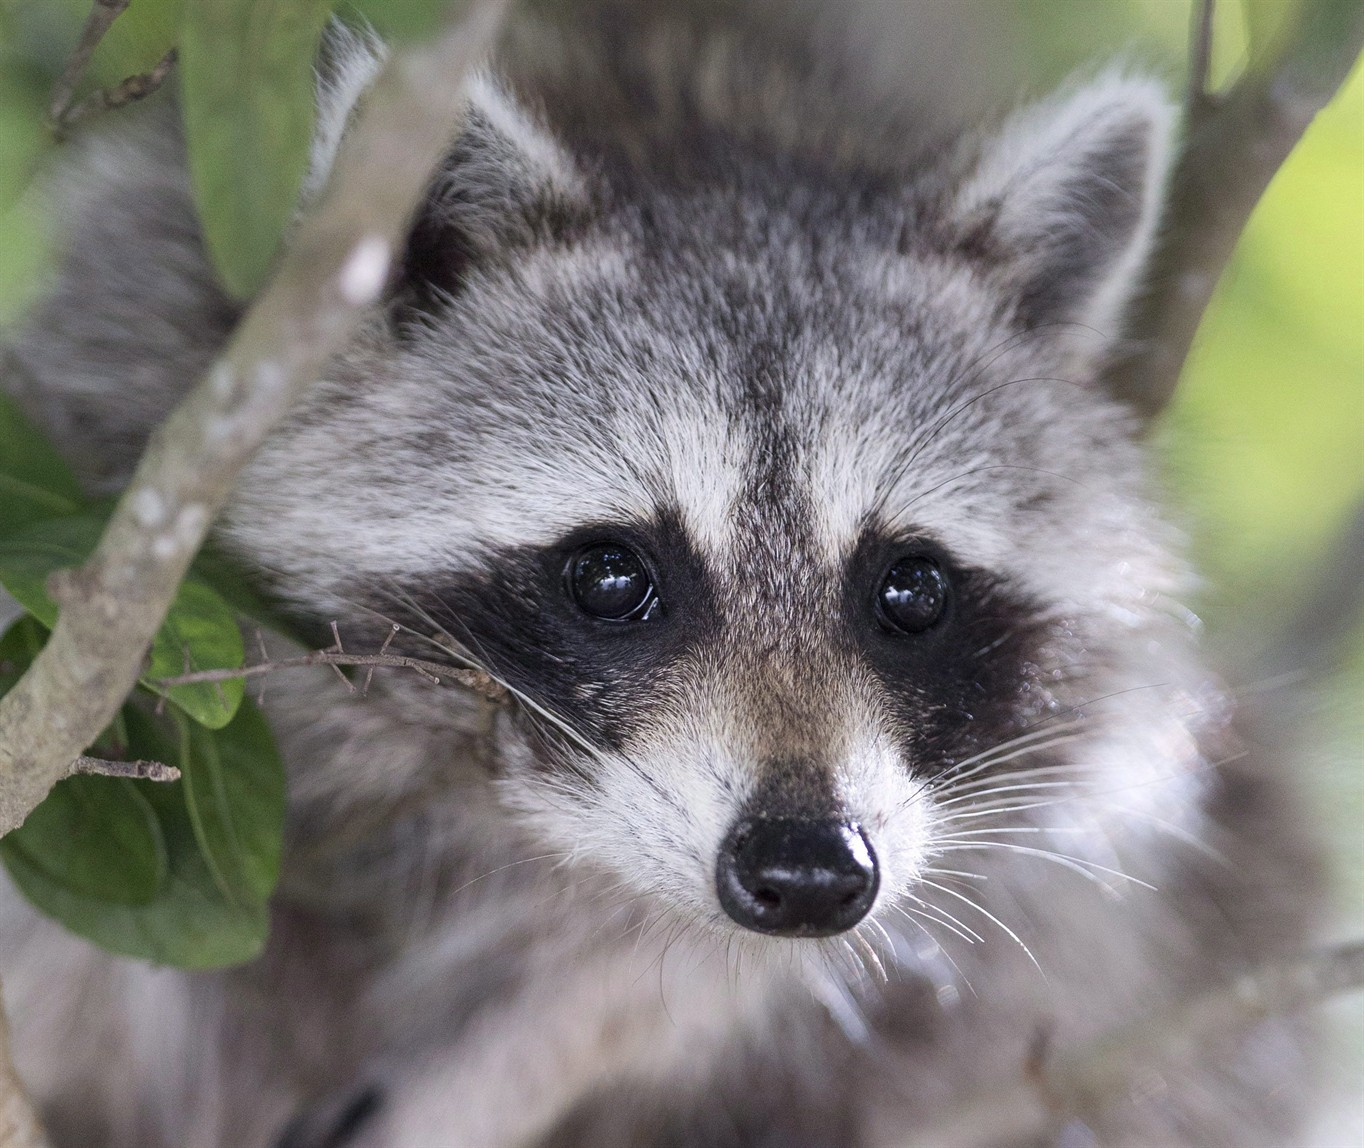 Man chased by raccoon believed to be infected